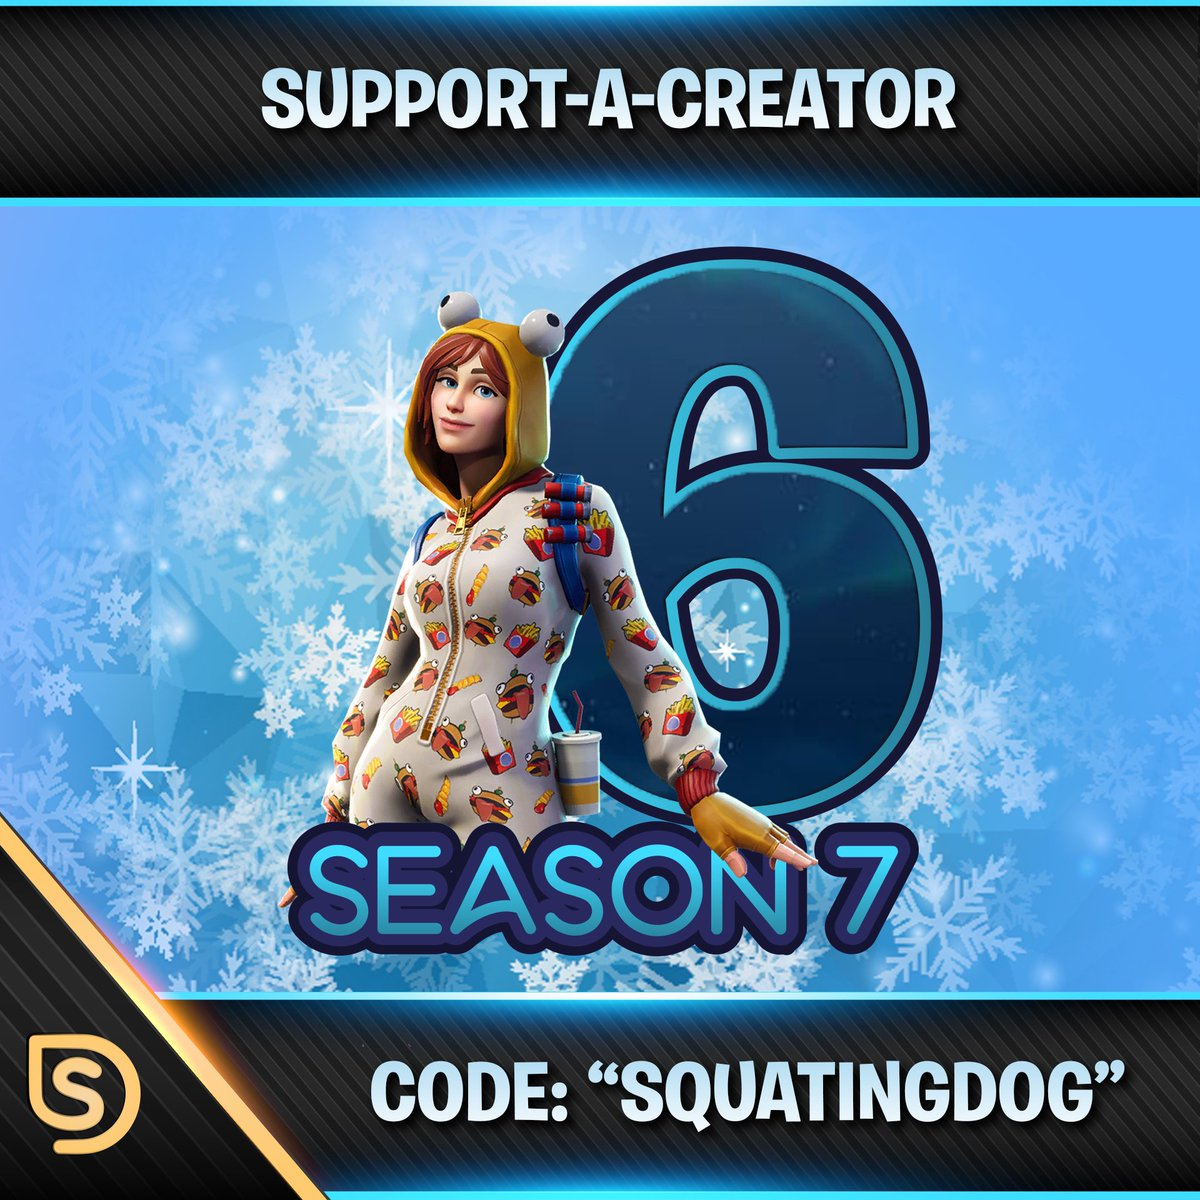 Squatingdog On Twitter Retweet Tag A Friend Who Needs The Season 7 Week 6 Cheat Sheet For Fortnite Battle Royale S Battlepass By Thesquatingdog If You Like This Content Use Squatingdog As Your Support